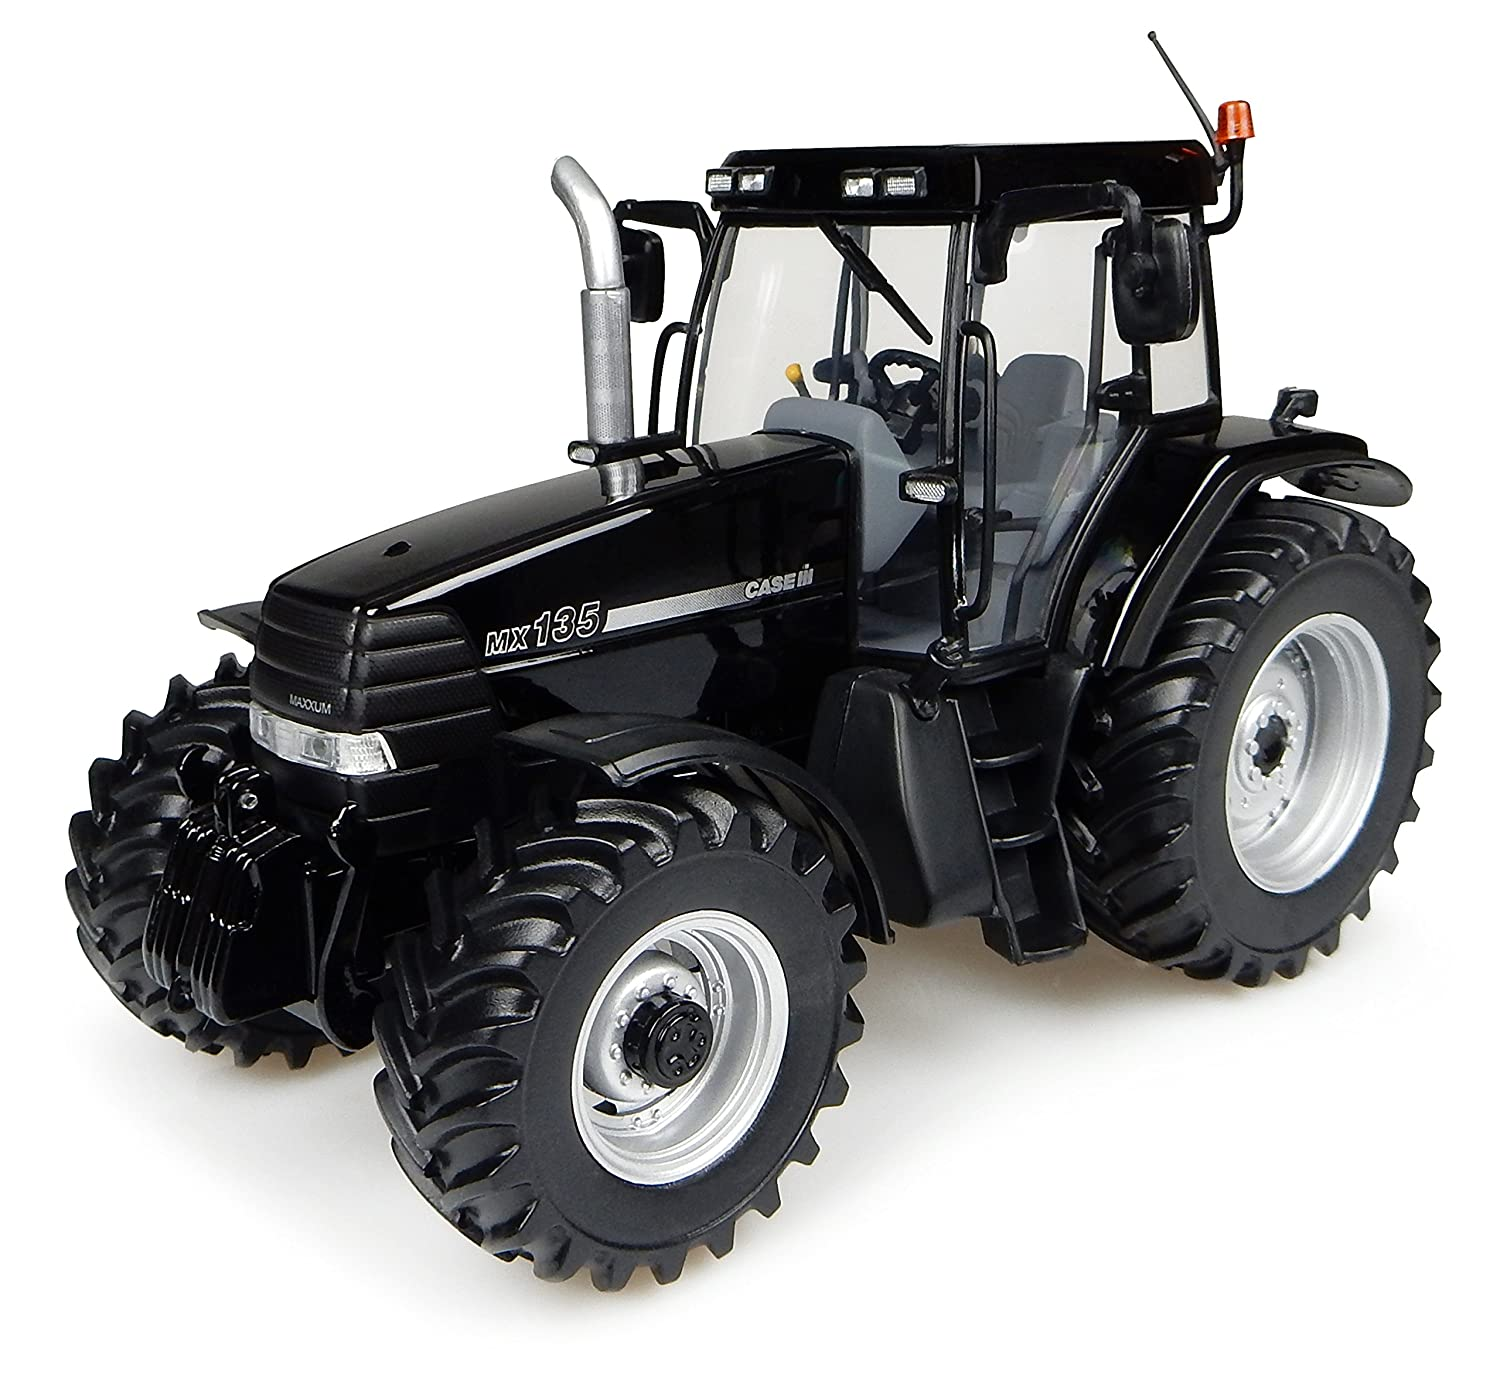 Universal Hobbies uh4952 - Tractor - Ih MX 135 Maxxum - Black Beauty -  Scale 1/32 - Black: Amazon.co.uk: Toys & Games